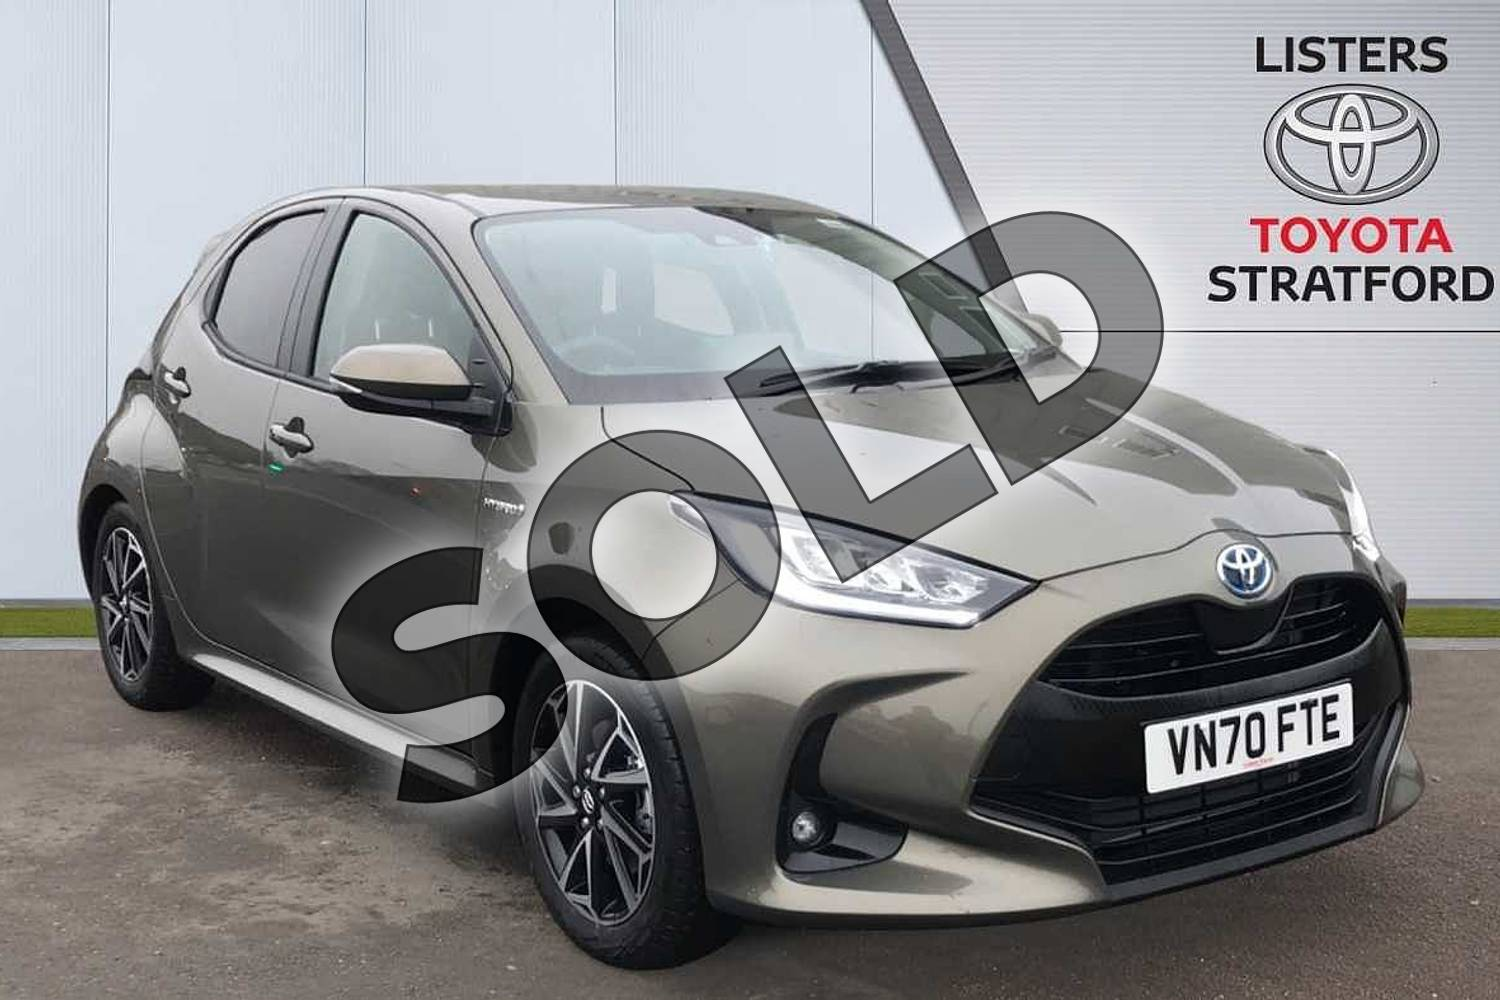 2020 Toyota Yaris Hatchback 1.5 Hybrid Design 5dr CVT in Green at Listers Toyota Stratford-upon-Avon